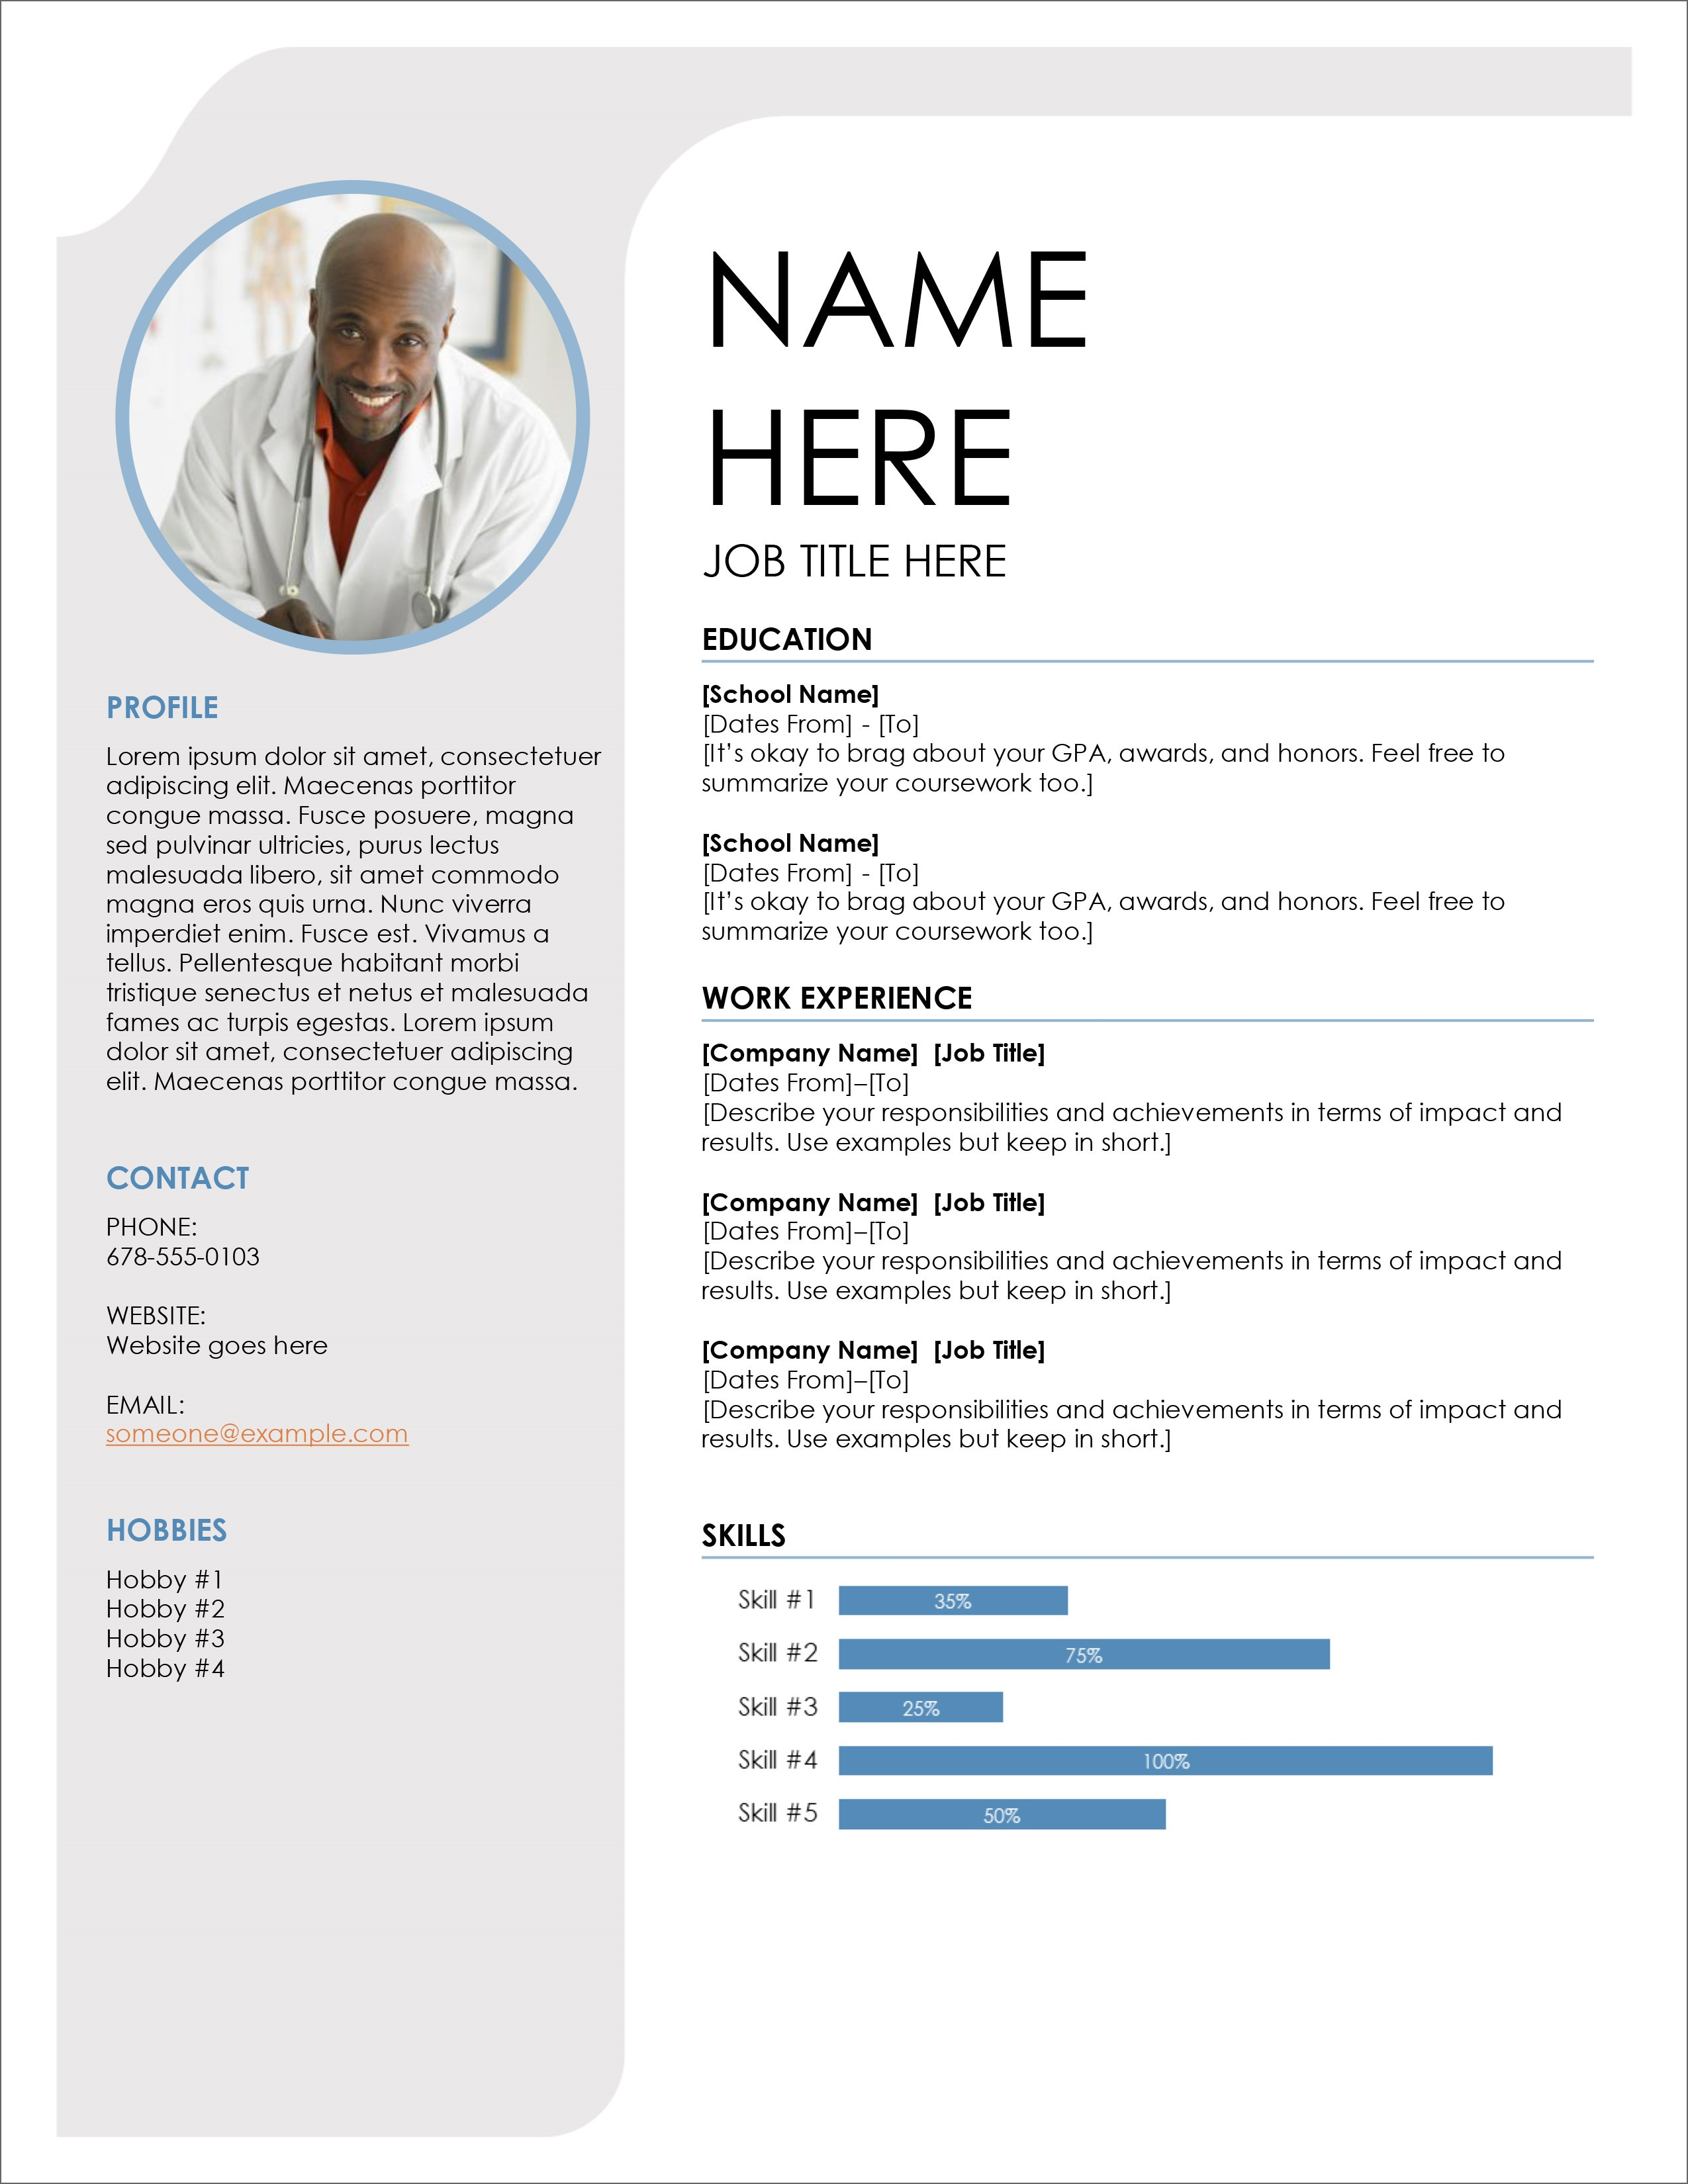 004 Astounding Microsoft Word Resume Template Download High Definition  Modern M Free Office 2007Full